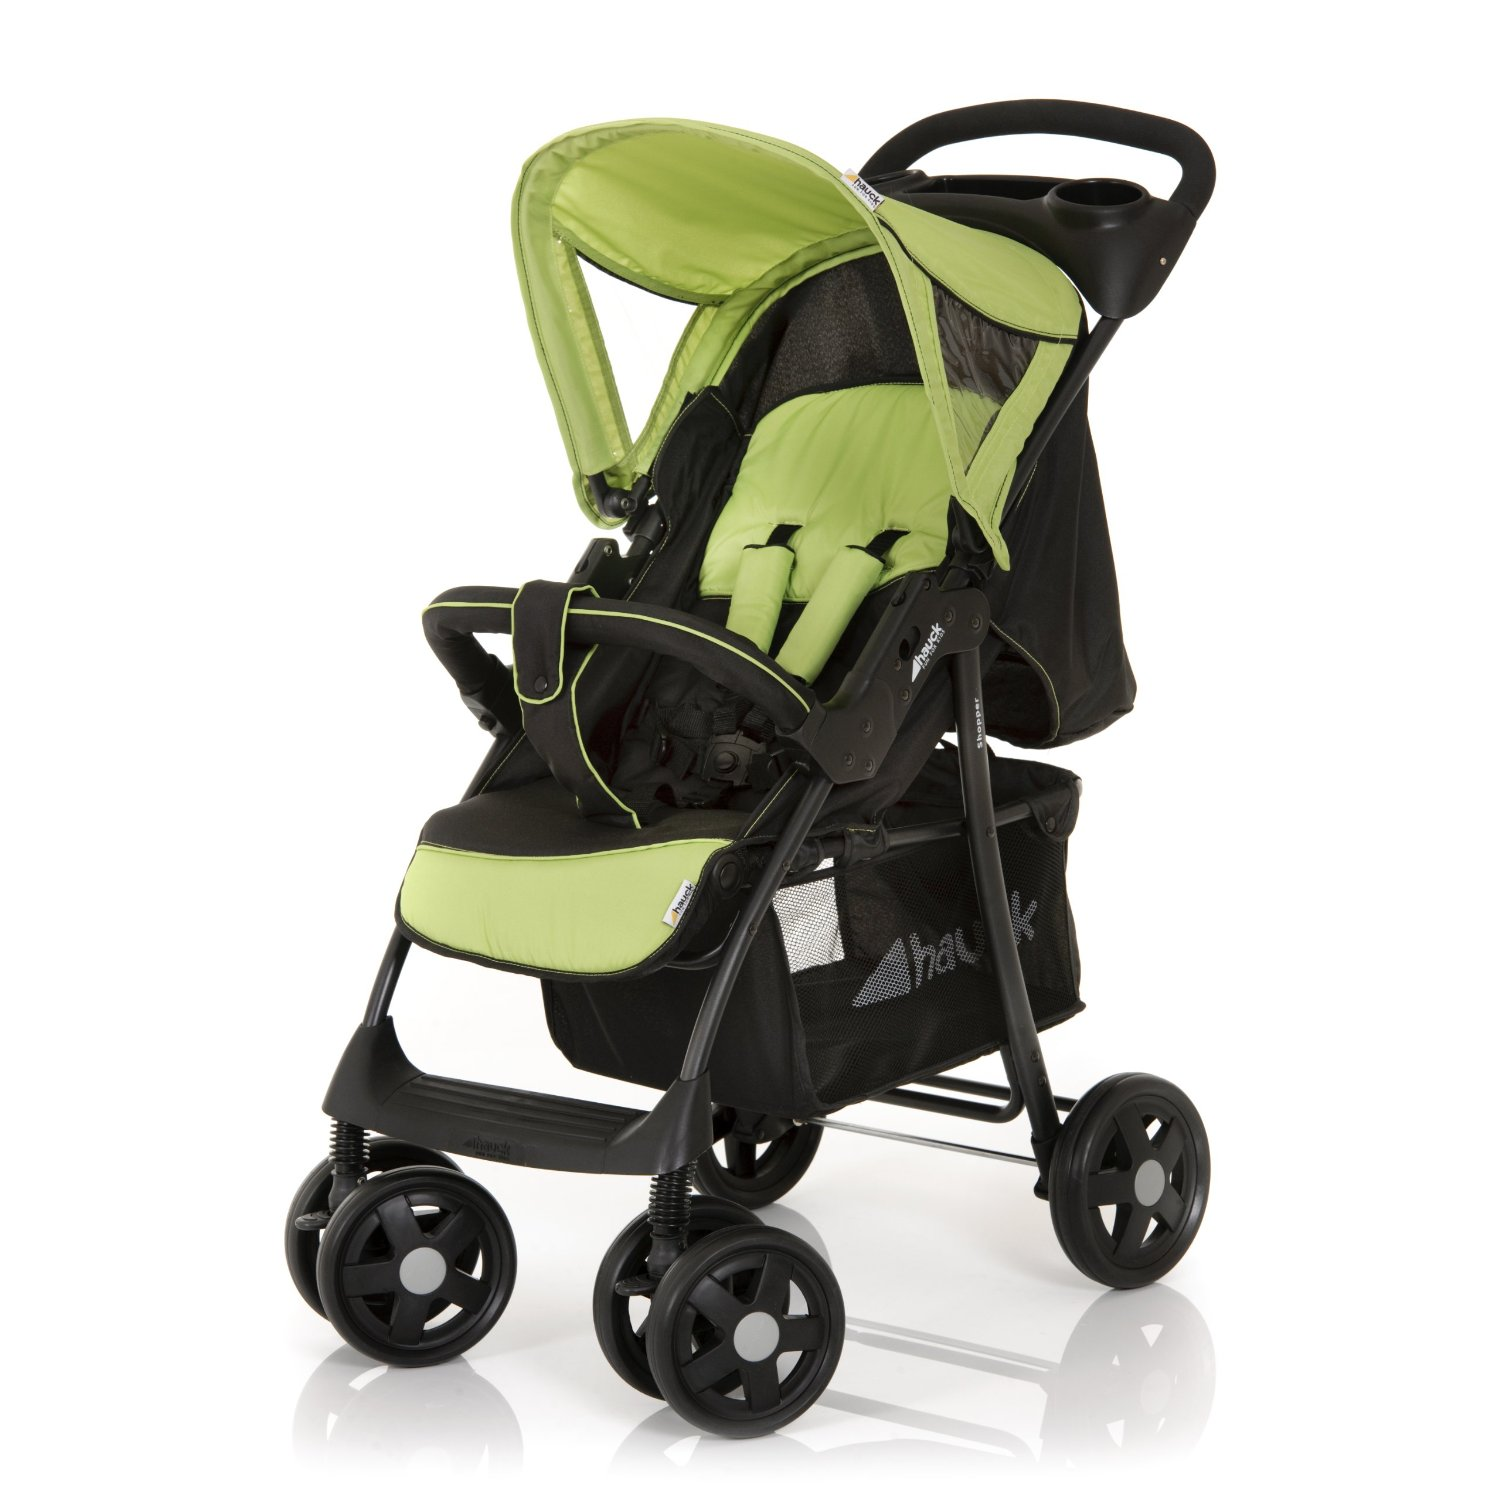 Hauck Shopper SH-12 Buggy